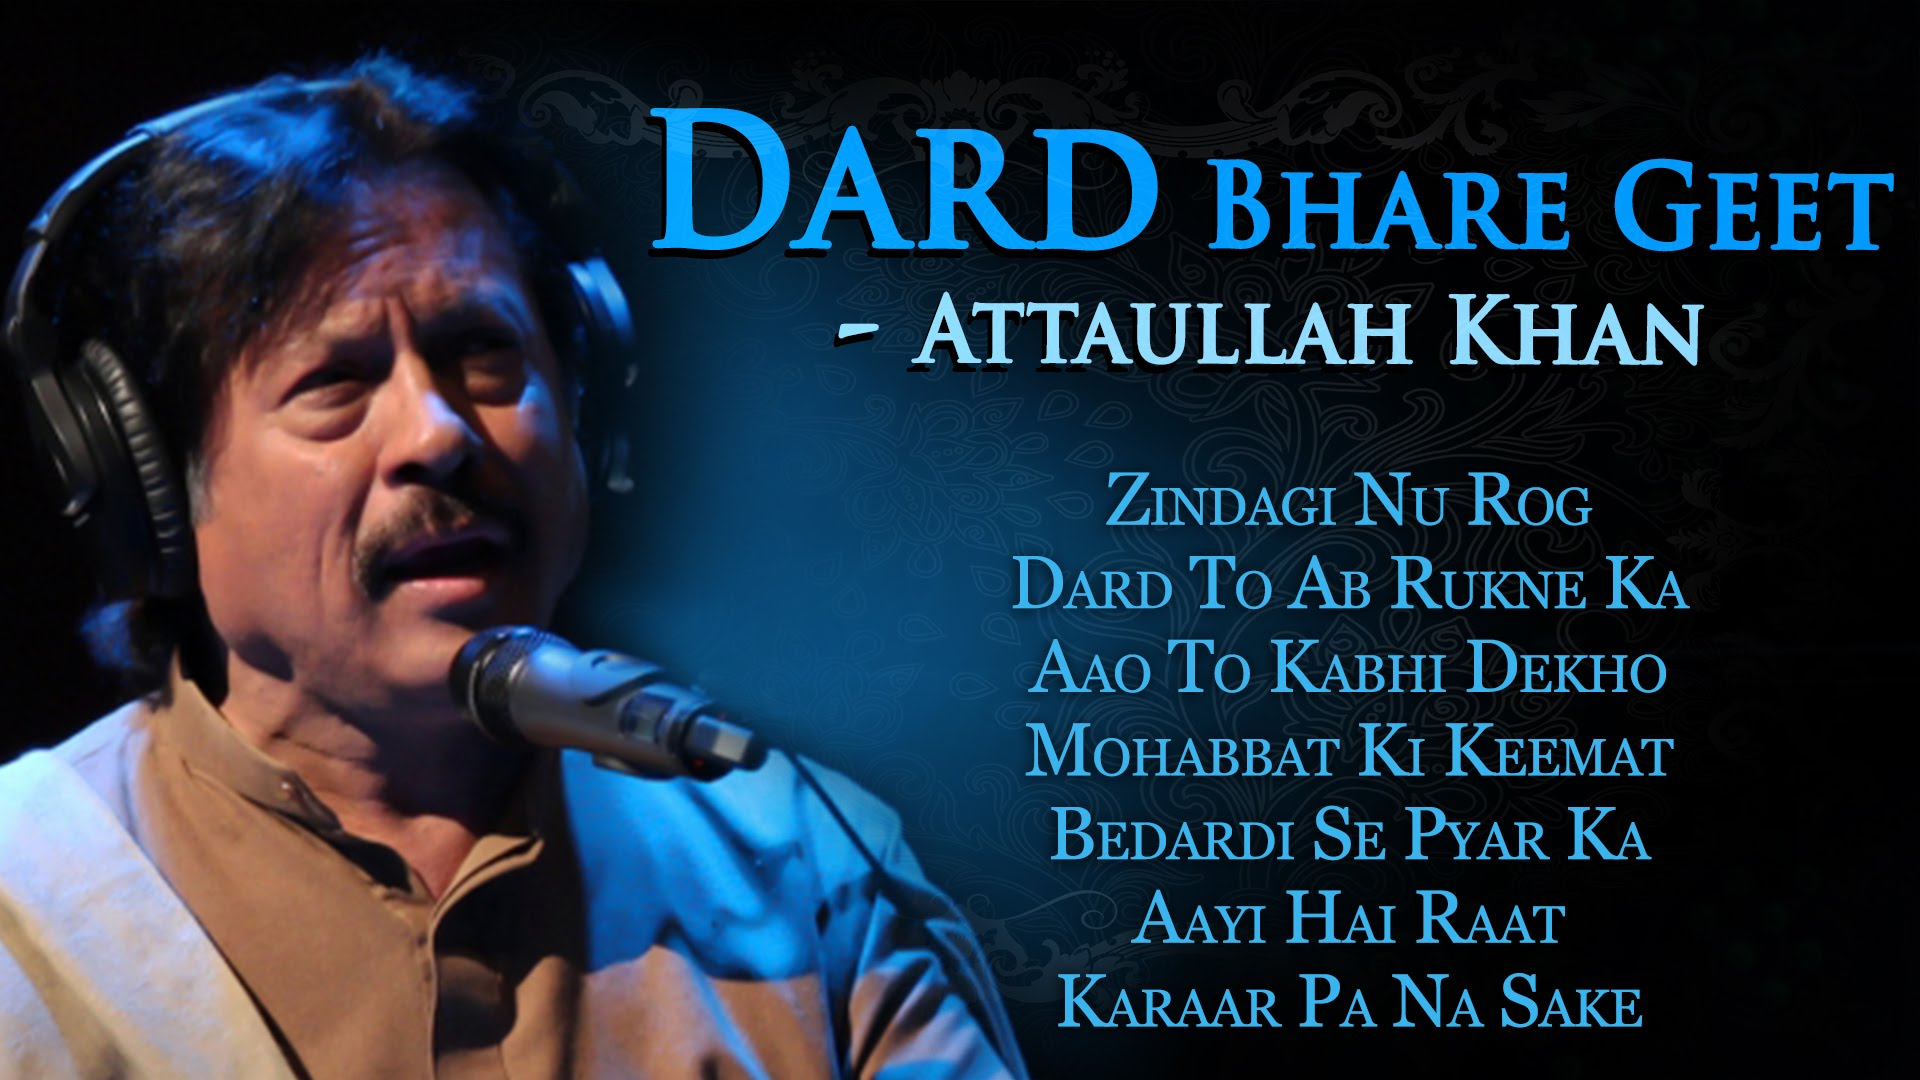 Pyar Bhare Wallpaper Attaullah Khan Shayari In Hindi 619533 Hd Wallpaper Backgrounds Download Searching for hindi songs online you must genuinely try aidc a website loaded with complete bollywood remixes, albums, mashups, edm mix, available for download. pyar bhare wallpaper attaullah khan